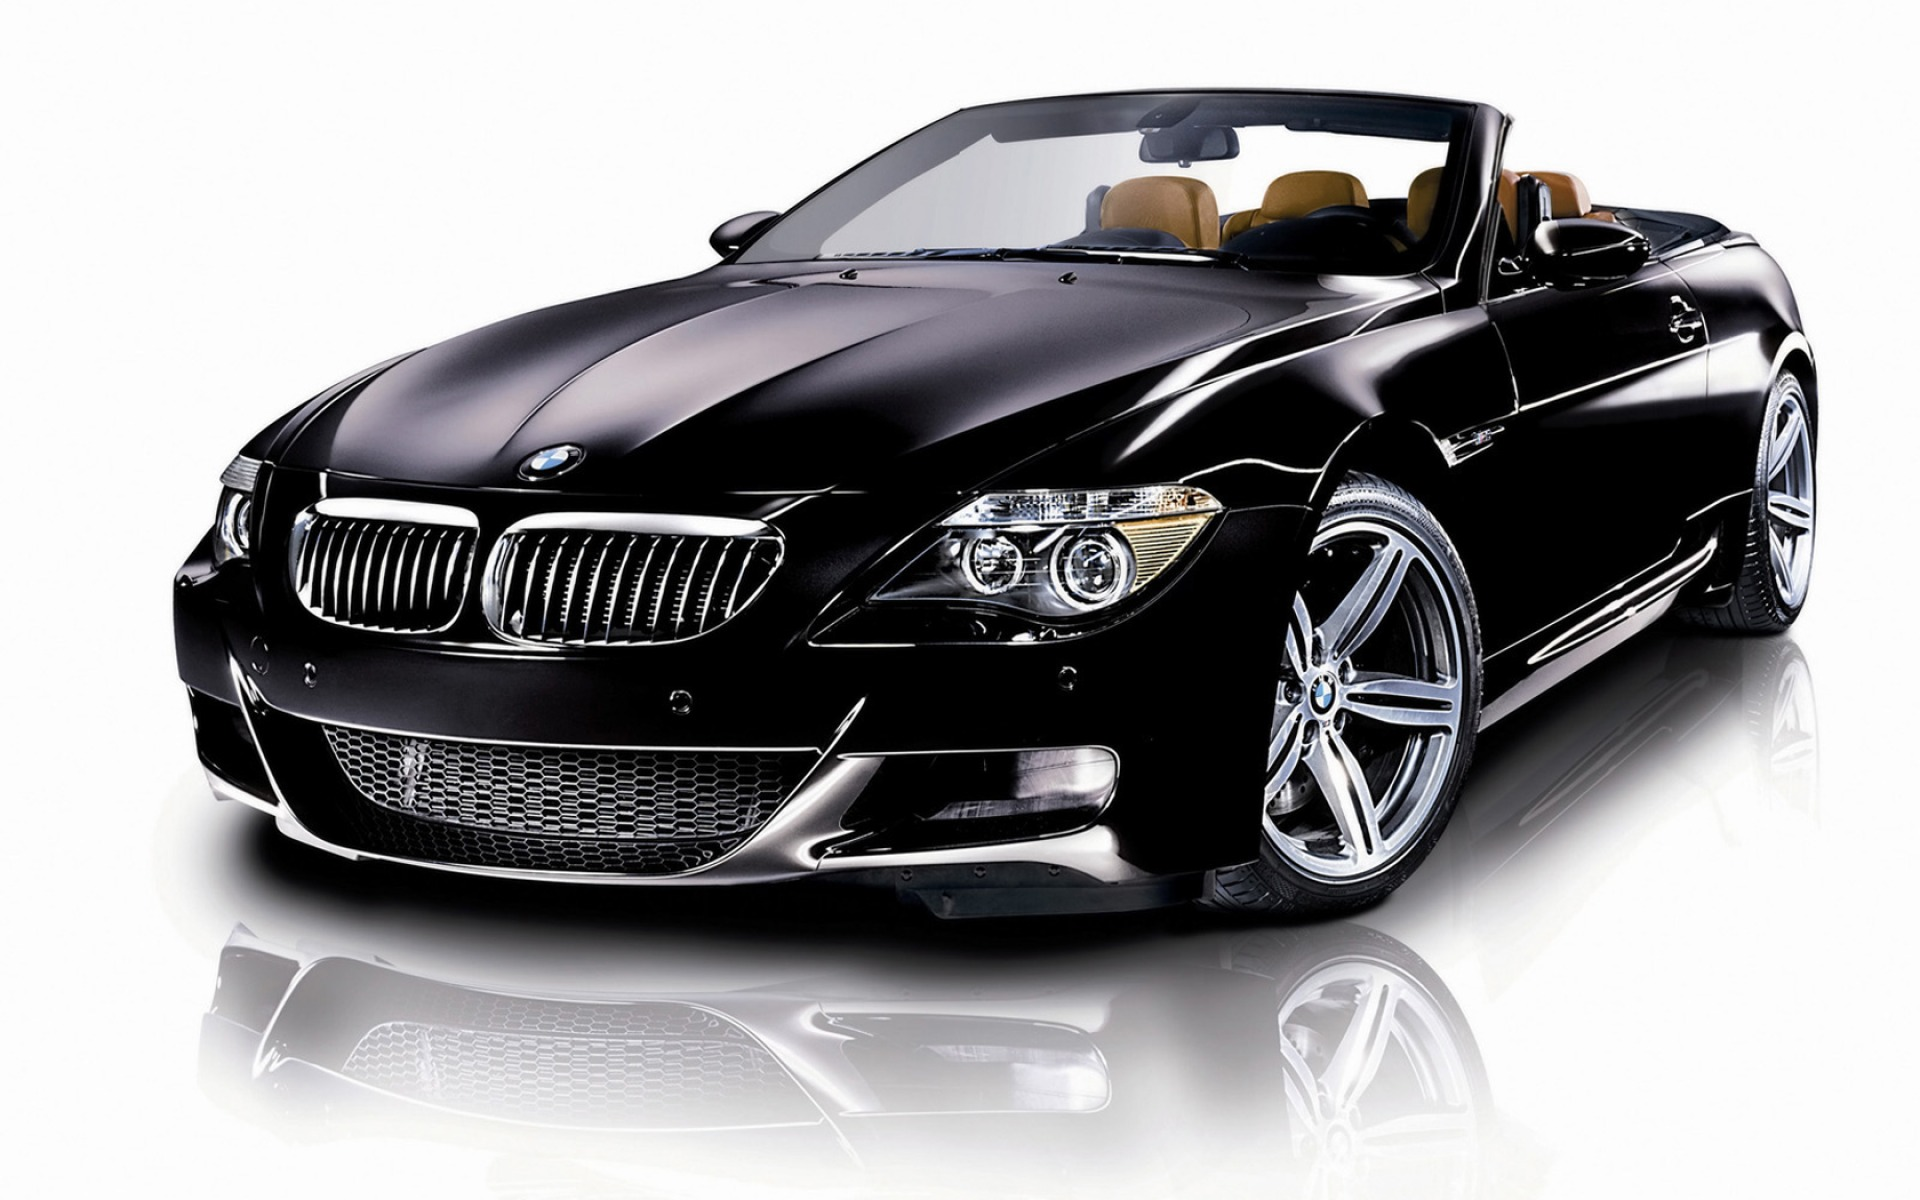 Ultrablogus  Marvelous Bmw Car Wallpaper Wallpapers For Free Download About   With Glamorous Bmw M Convertible Wallpaper Bmw Cars With Comely Jetta Interior Also Nissan Z Nismo Interior In Addition Maybach Interior And Bmw Series  Interior As Well As Renault Megane Interior Additionally Mercedes E Interior From Allfreedownloadcom With Ultrablogus  Glamorous Bmw Car Wallpaper Wallpapers For Free Download About   With Comely Bmw M Convertible Wallpaper Bmw Cars And Marvelous Jetta Interior Also Nissan Z Nismo Interior In Addition Maybach Interior From Allfreedownloadcom